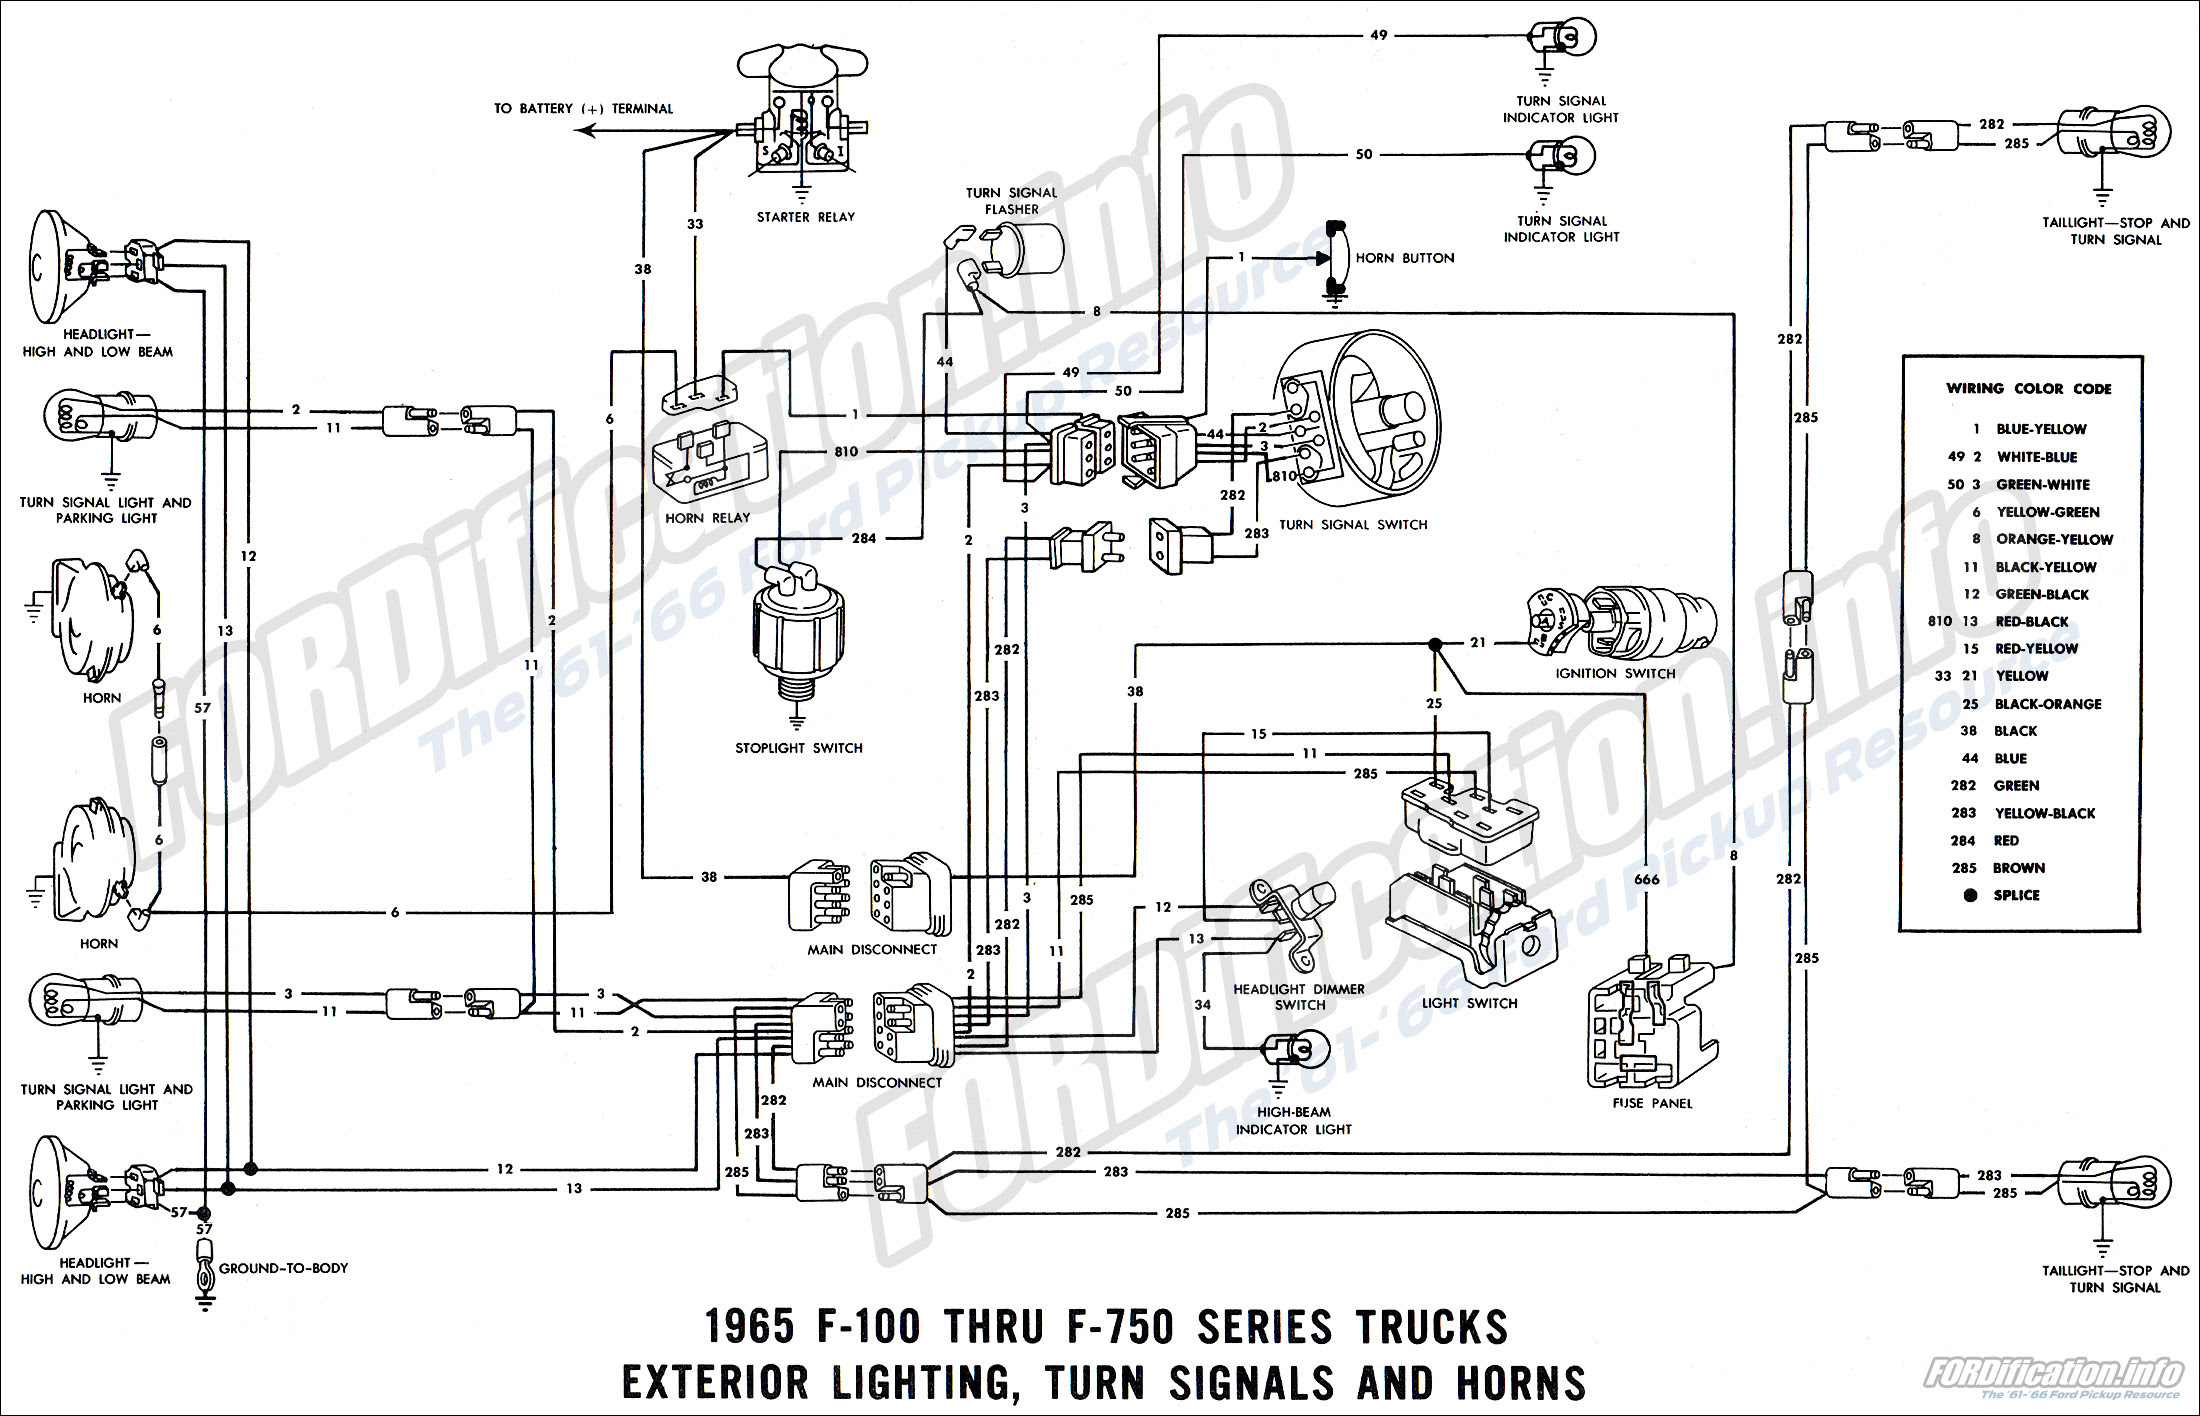 1969 Ford Truck Wiring Diagram Solar Panel Wiring Diagram With Fuses Autostereo Lanjut Wa2 Jeanjaures37 Fr